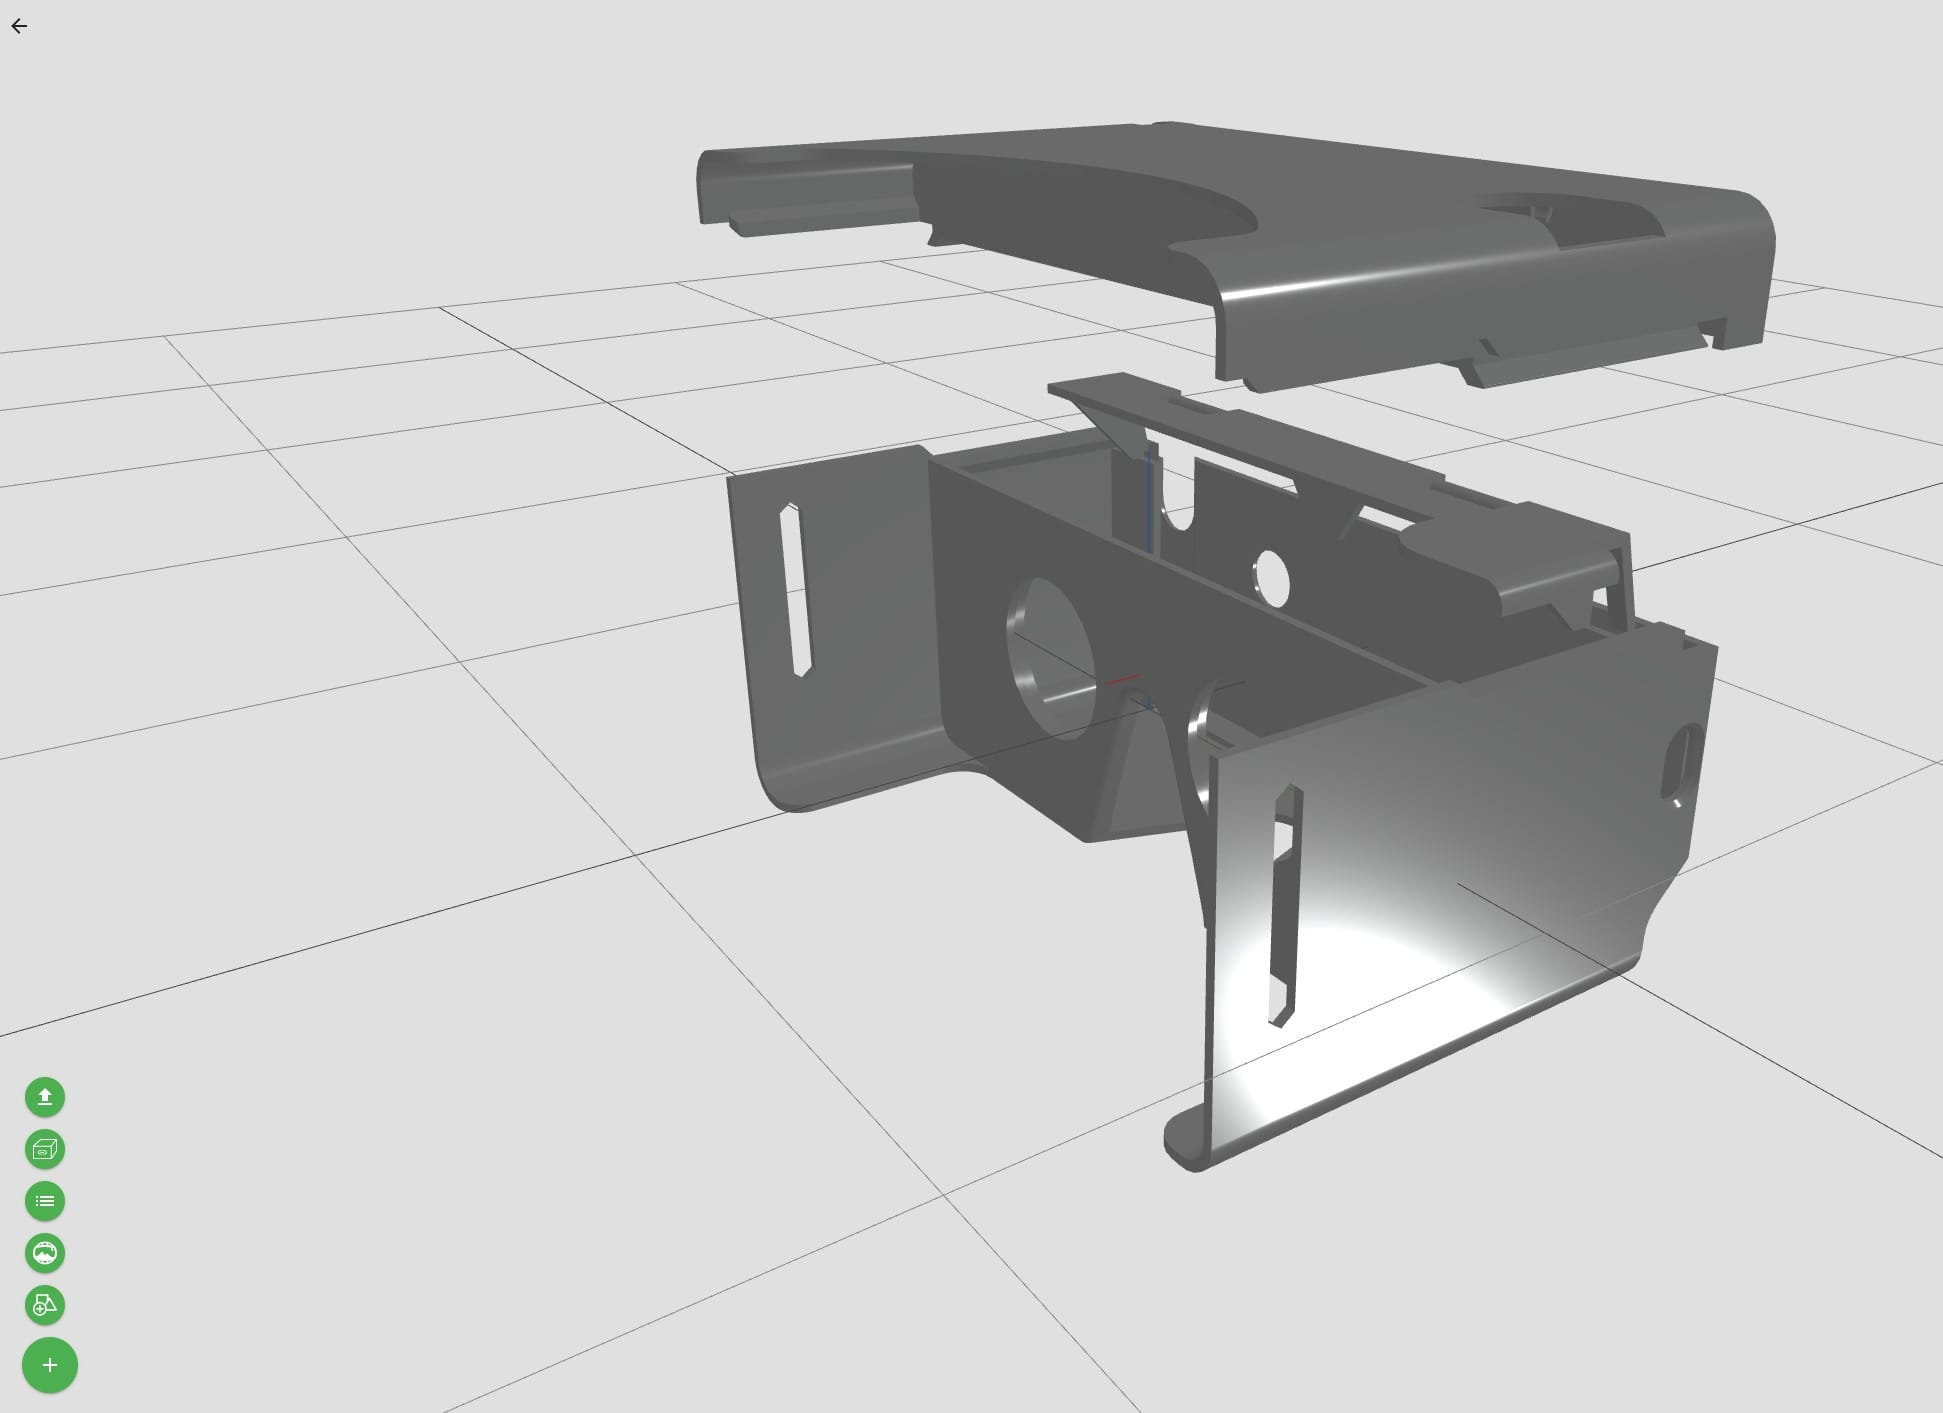 3D Orchard to Assist Open Source Hardware Design